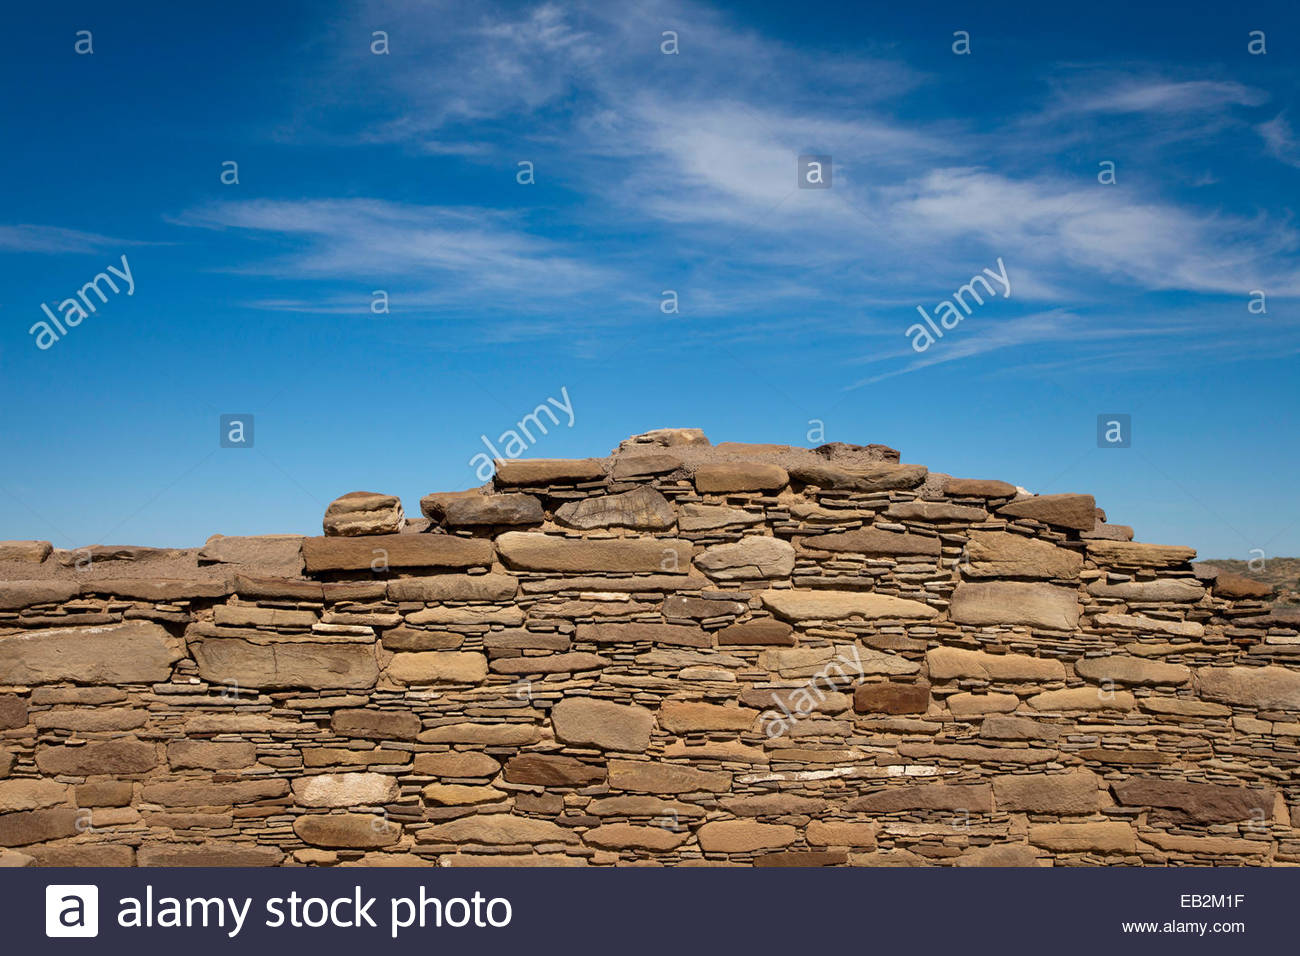 Pueblo Alto, a Chacoan Anasazi great house in Chaco Culture National Historical Park, New Mexico. - Stock Image